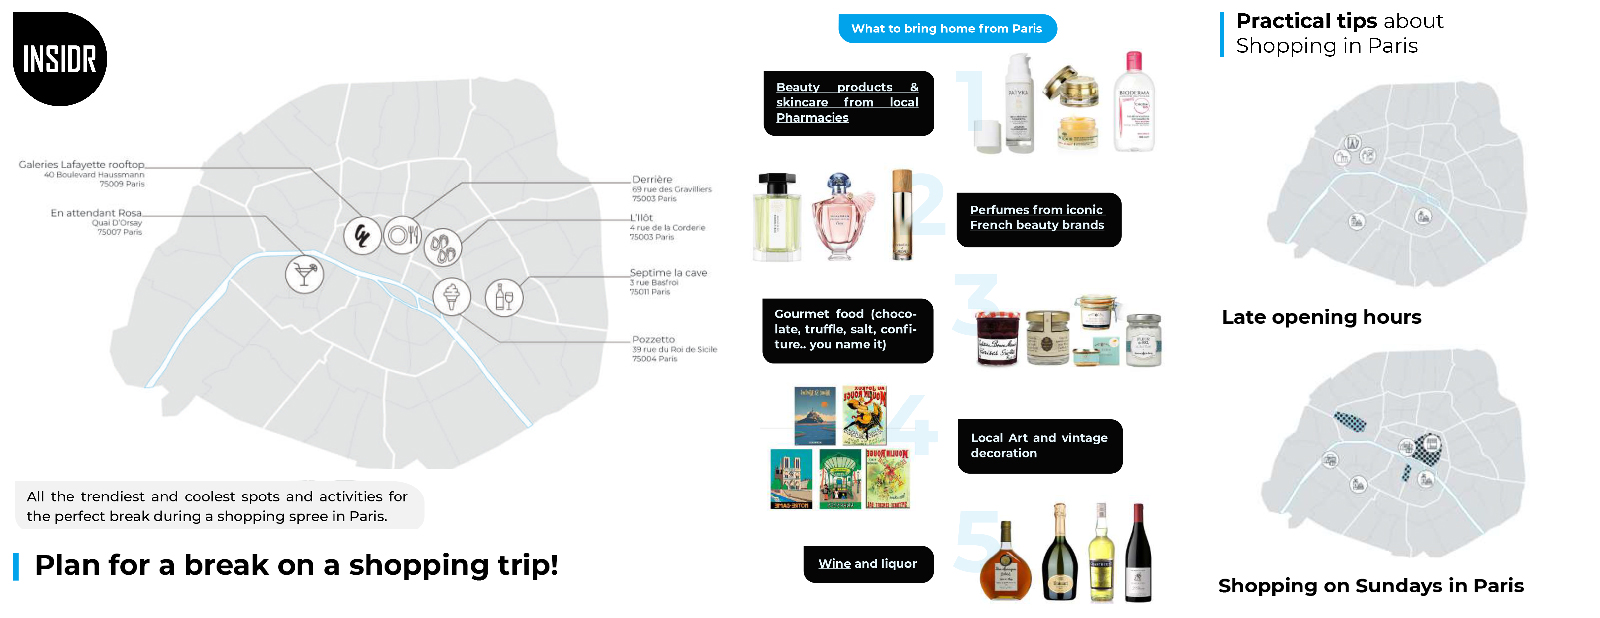 INSIDR Paris Shopping Guide - Paris Shopping Guide With Maps & Itineraries